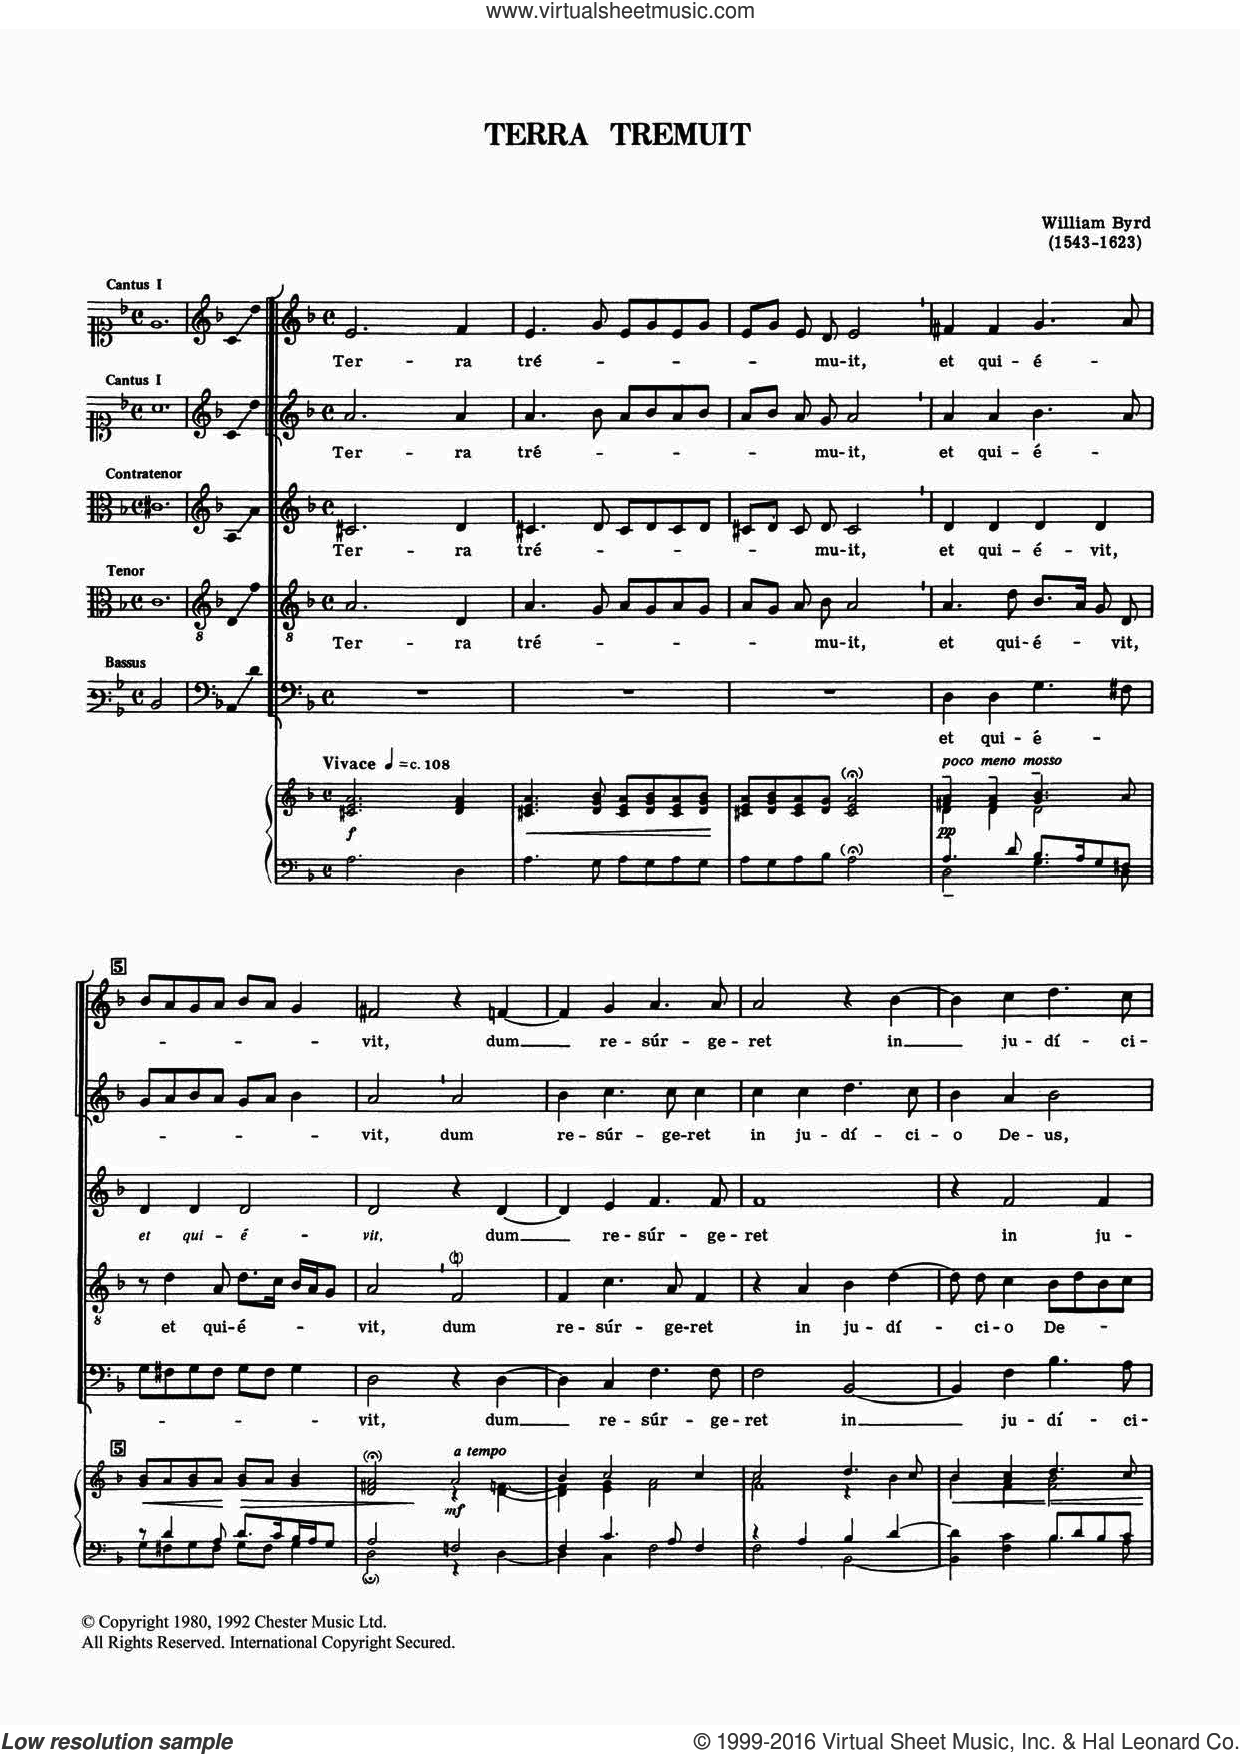 Terra Tremuit sheet music for voice, piano or guitar by William Byrd, classical score, intermediate skill level